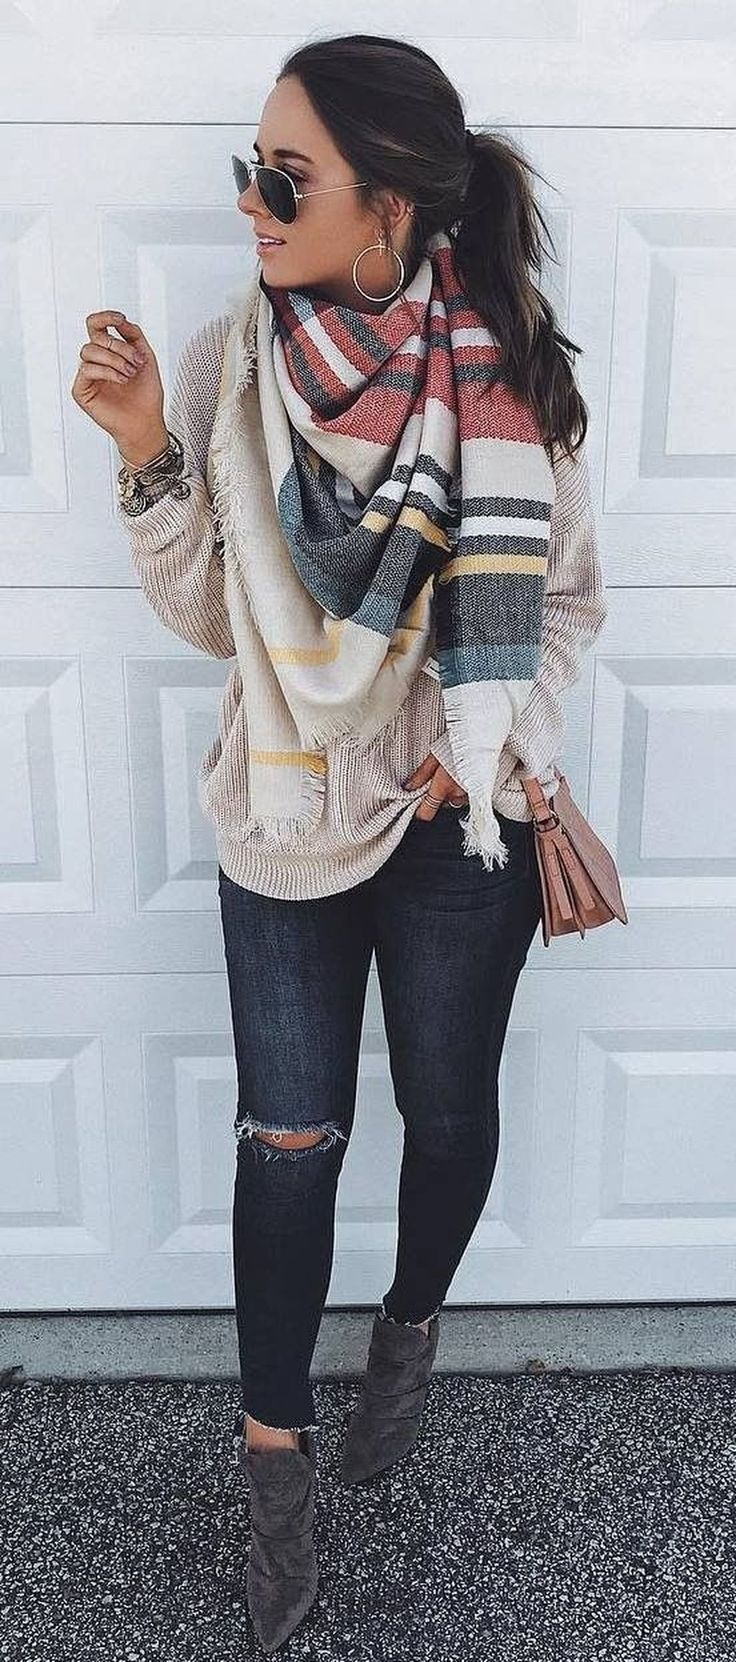 Nice 33 Stunning Street Fashion Outfit Winter 2017. More at http://trendwear4you.com/2017/12/28/33-stunning-street-fashion-outfit-winter-2017/ #winteroutfits